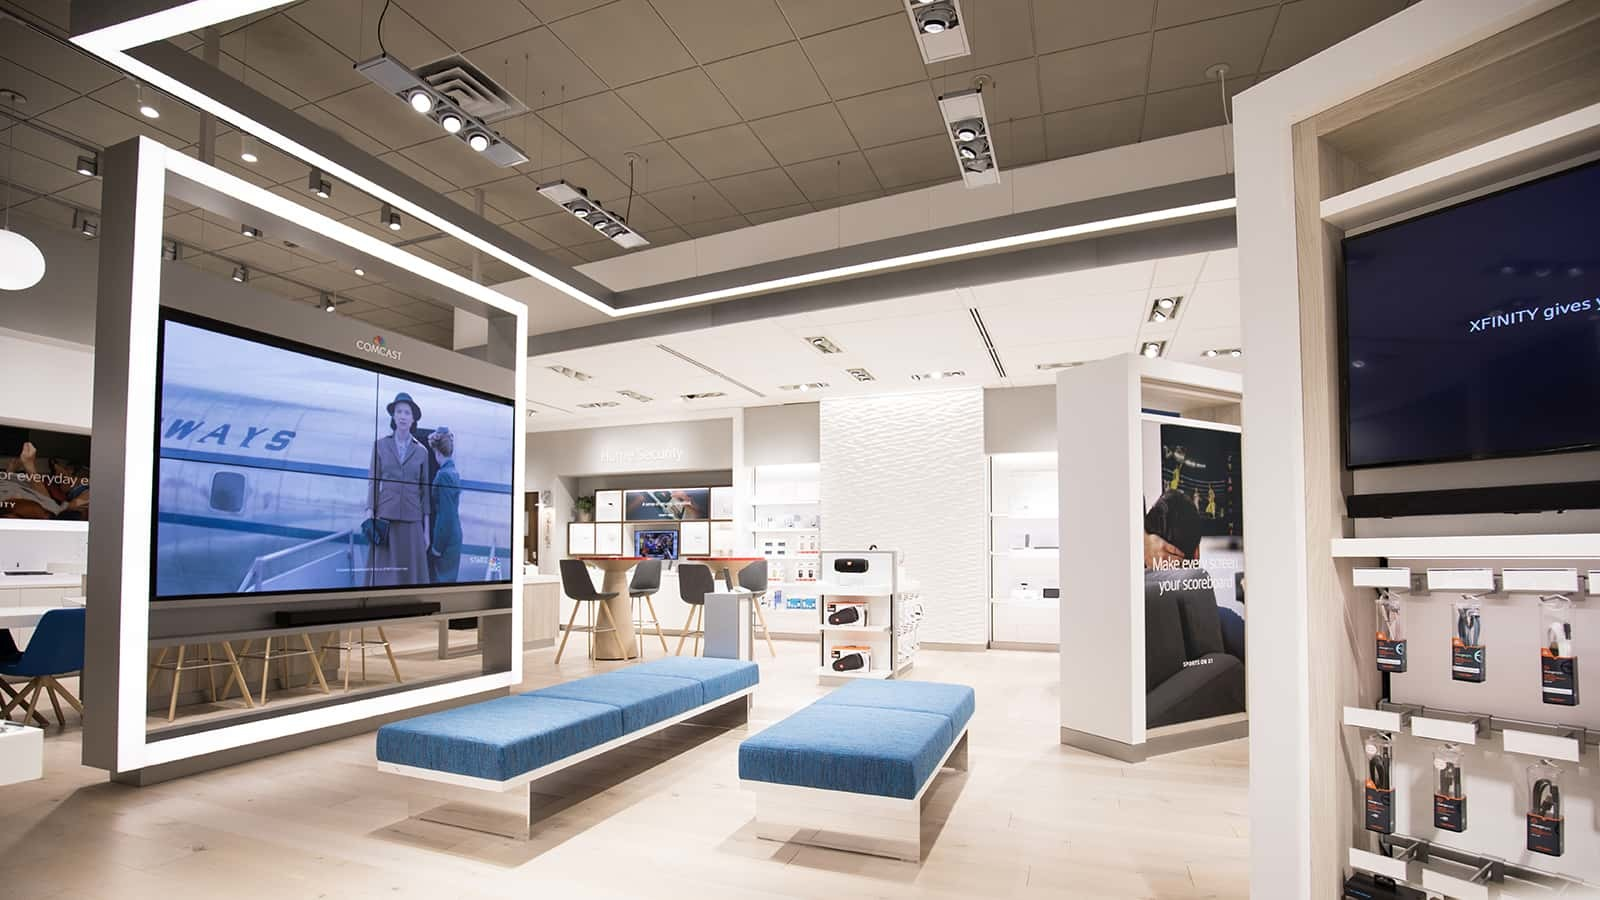 The Comcast Xfinity Stores were built to be bright and inviting.